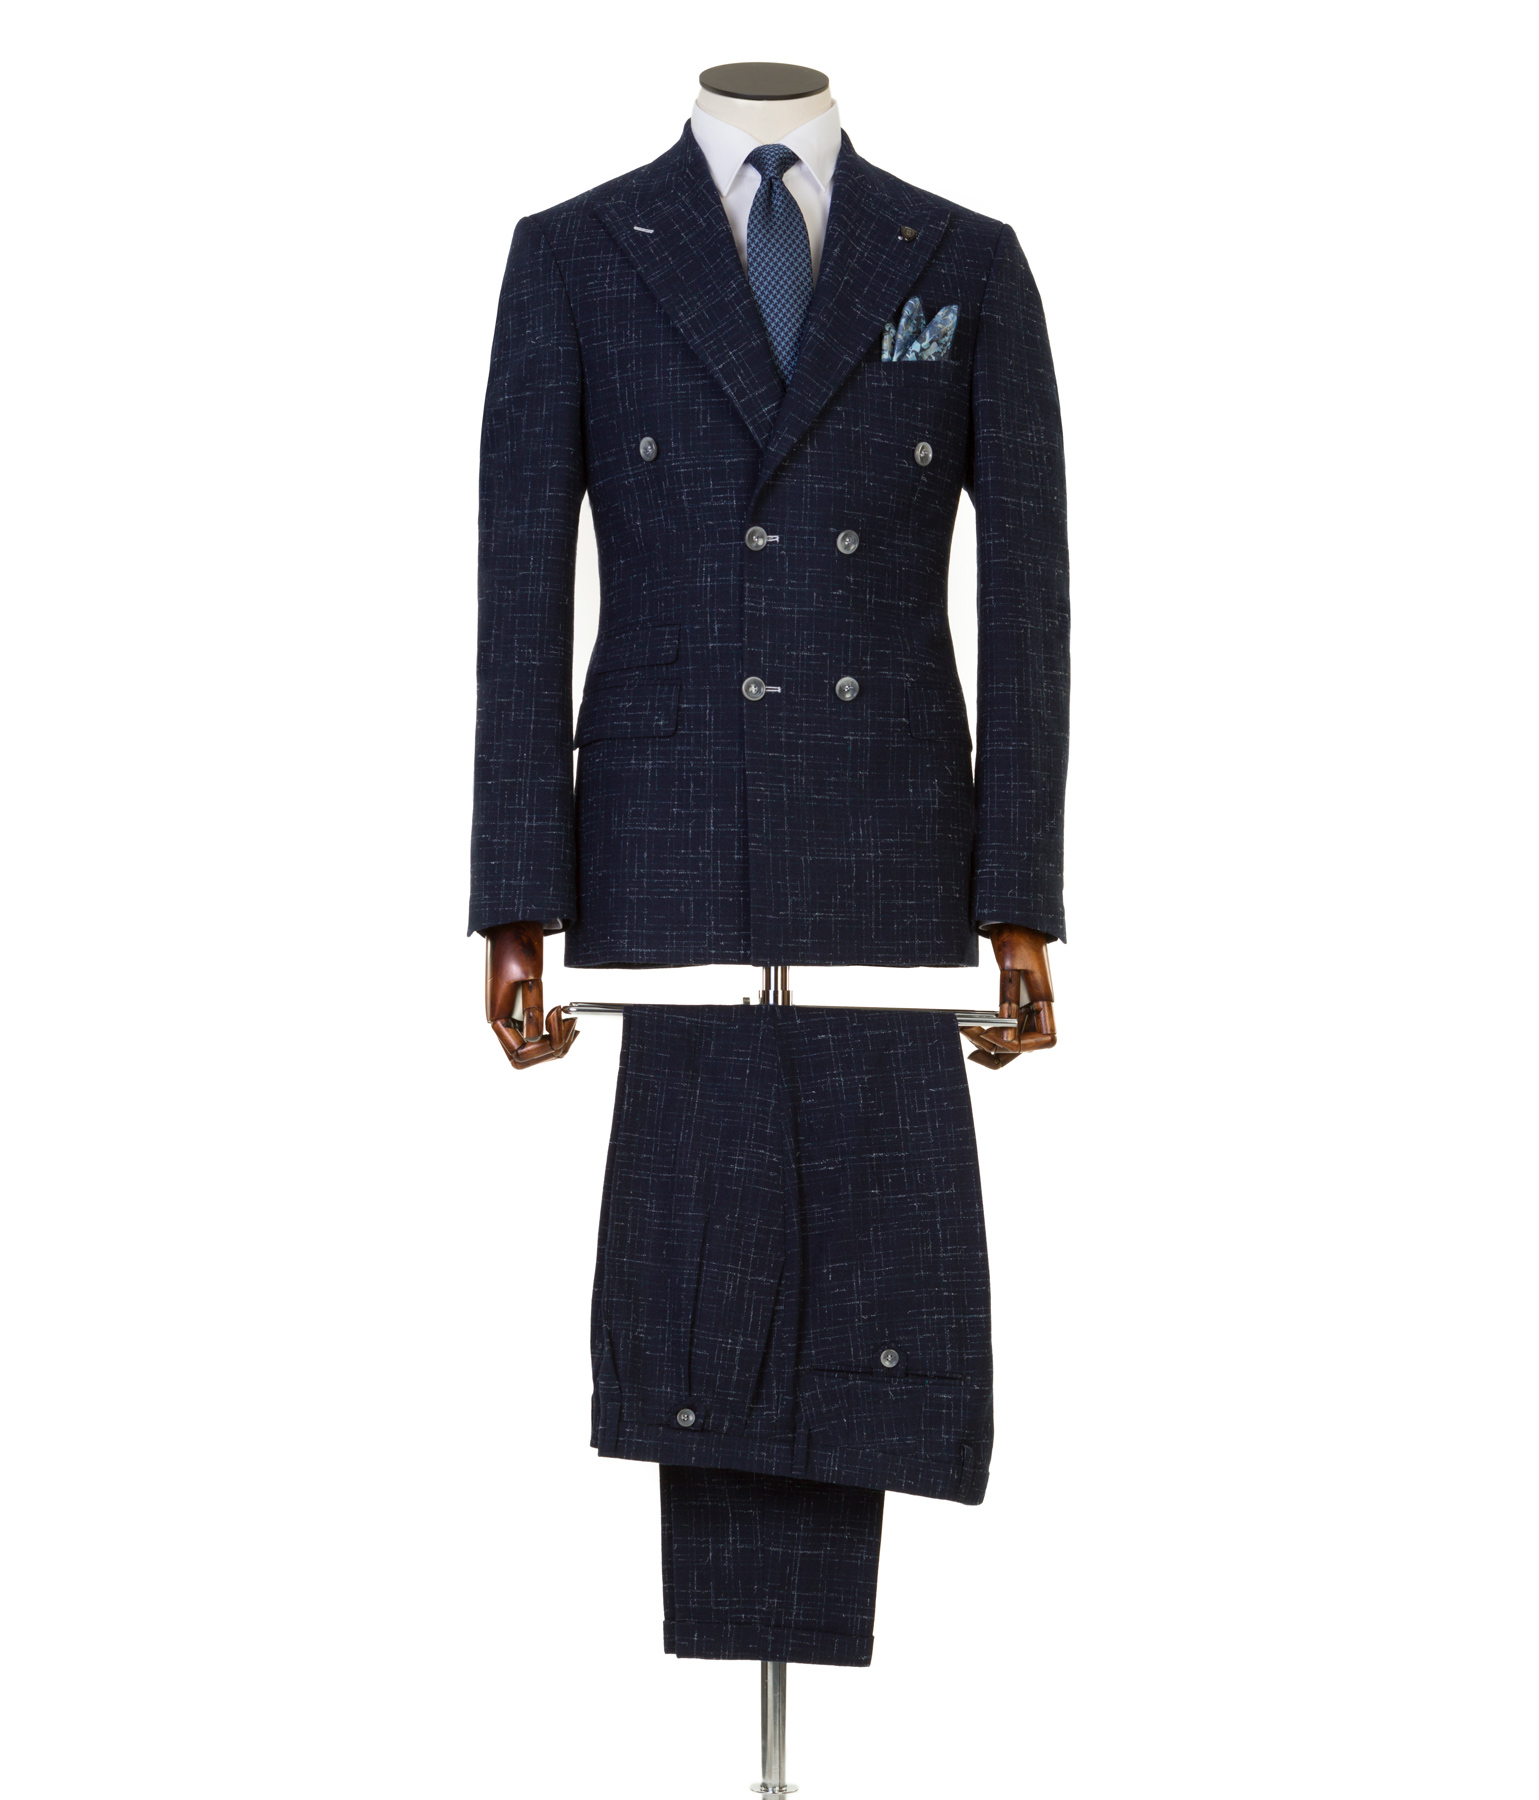 Lefter Navy Tweed Double Breasted suit